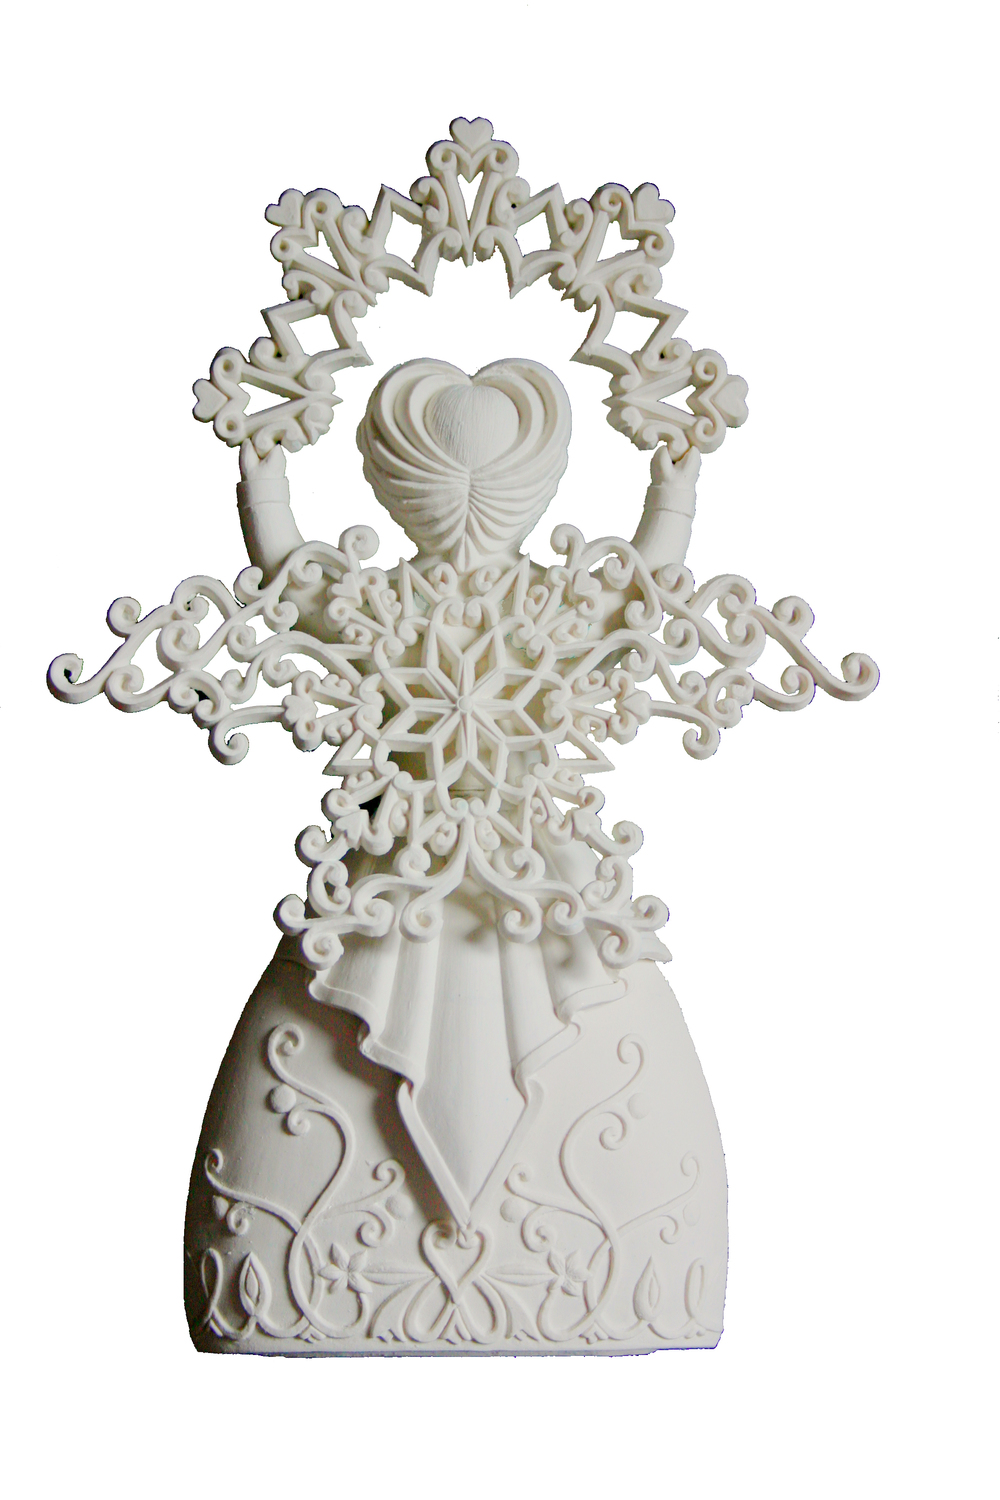 Porcelain Collectible Angel Ornament - Snowflake Angel Family